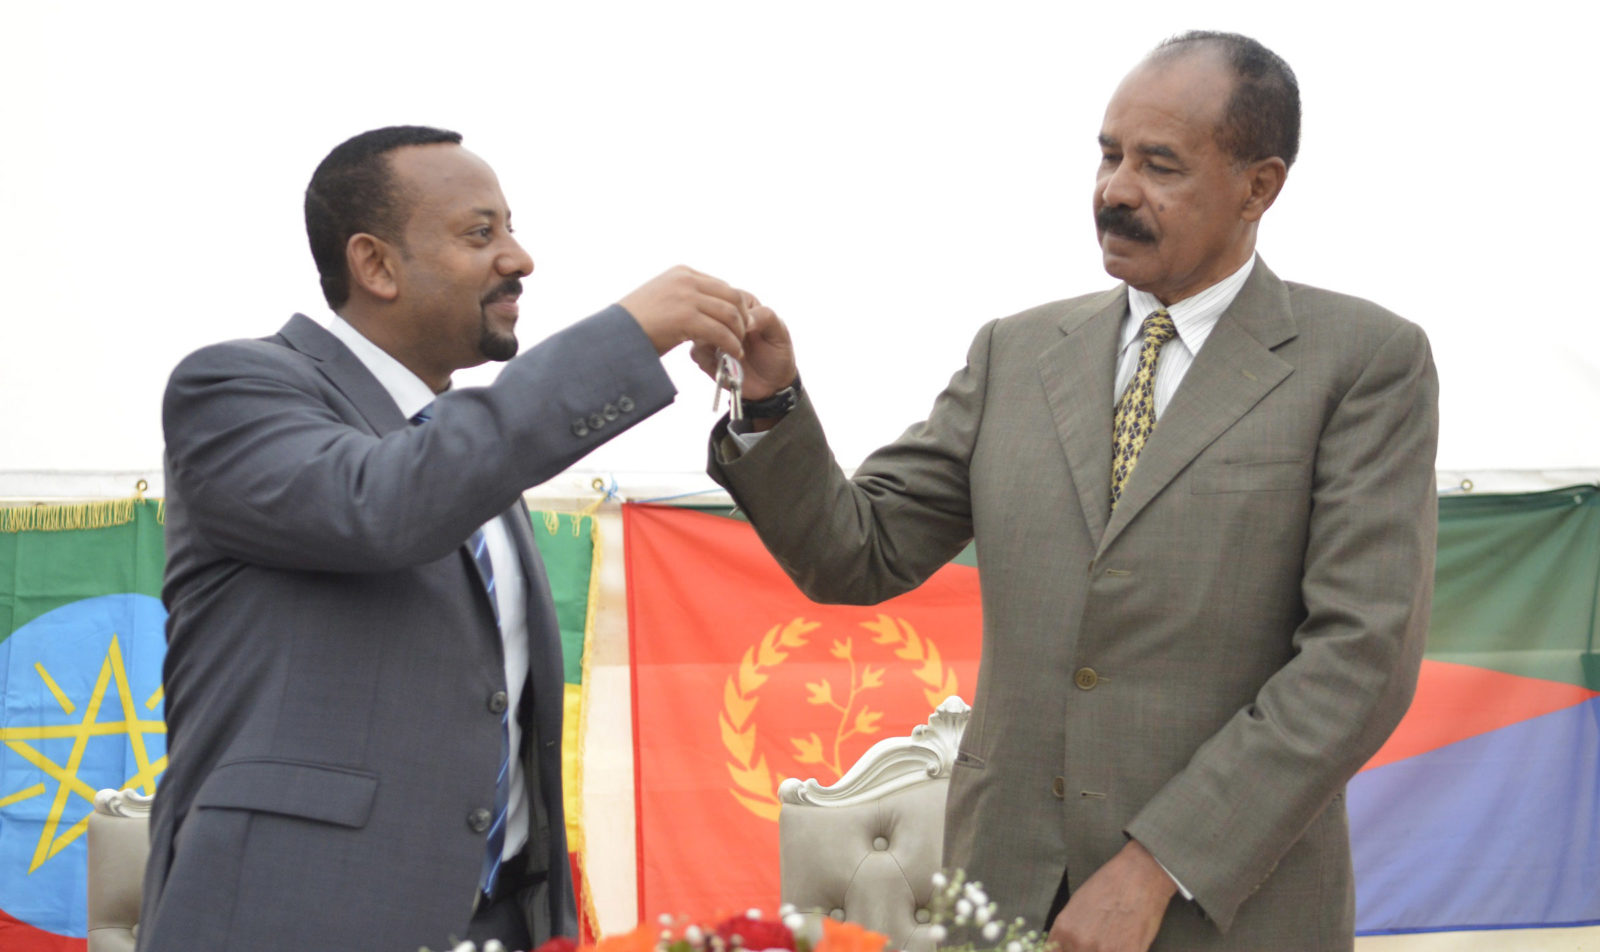 The region may benefit from a breakthrough in Ethiopia-